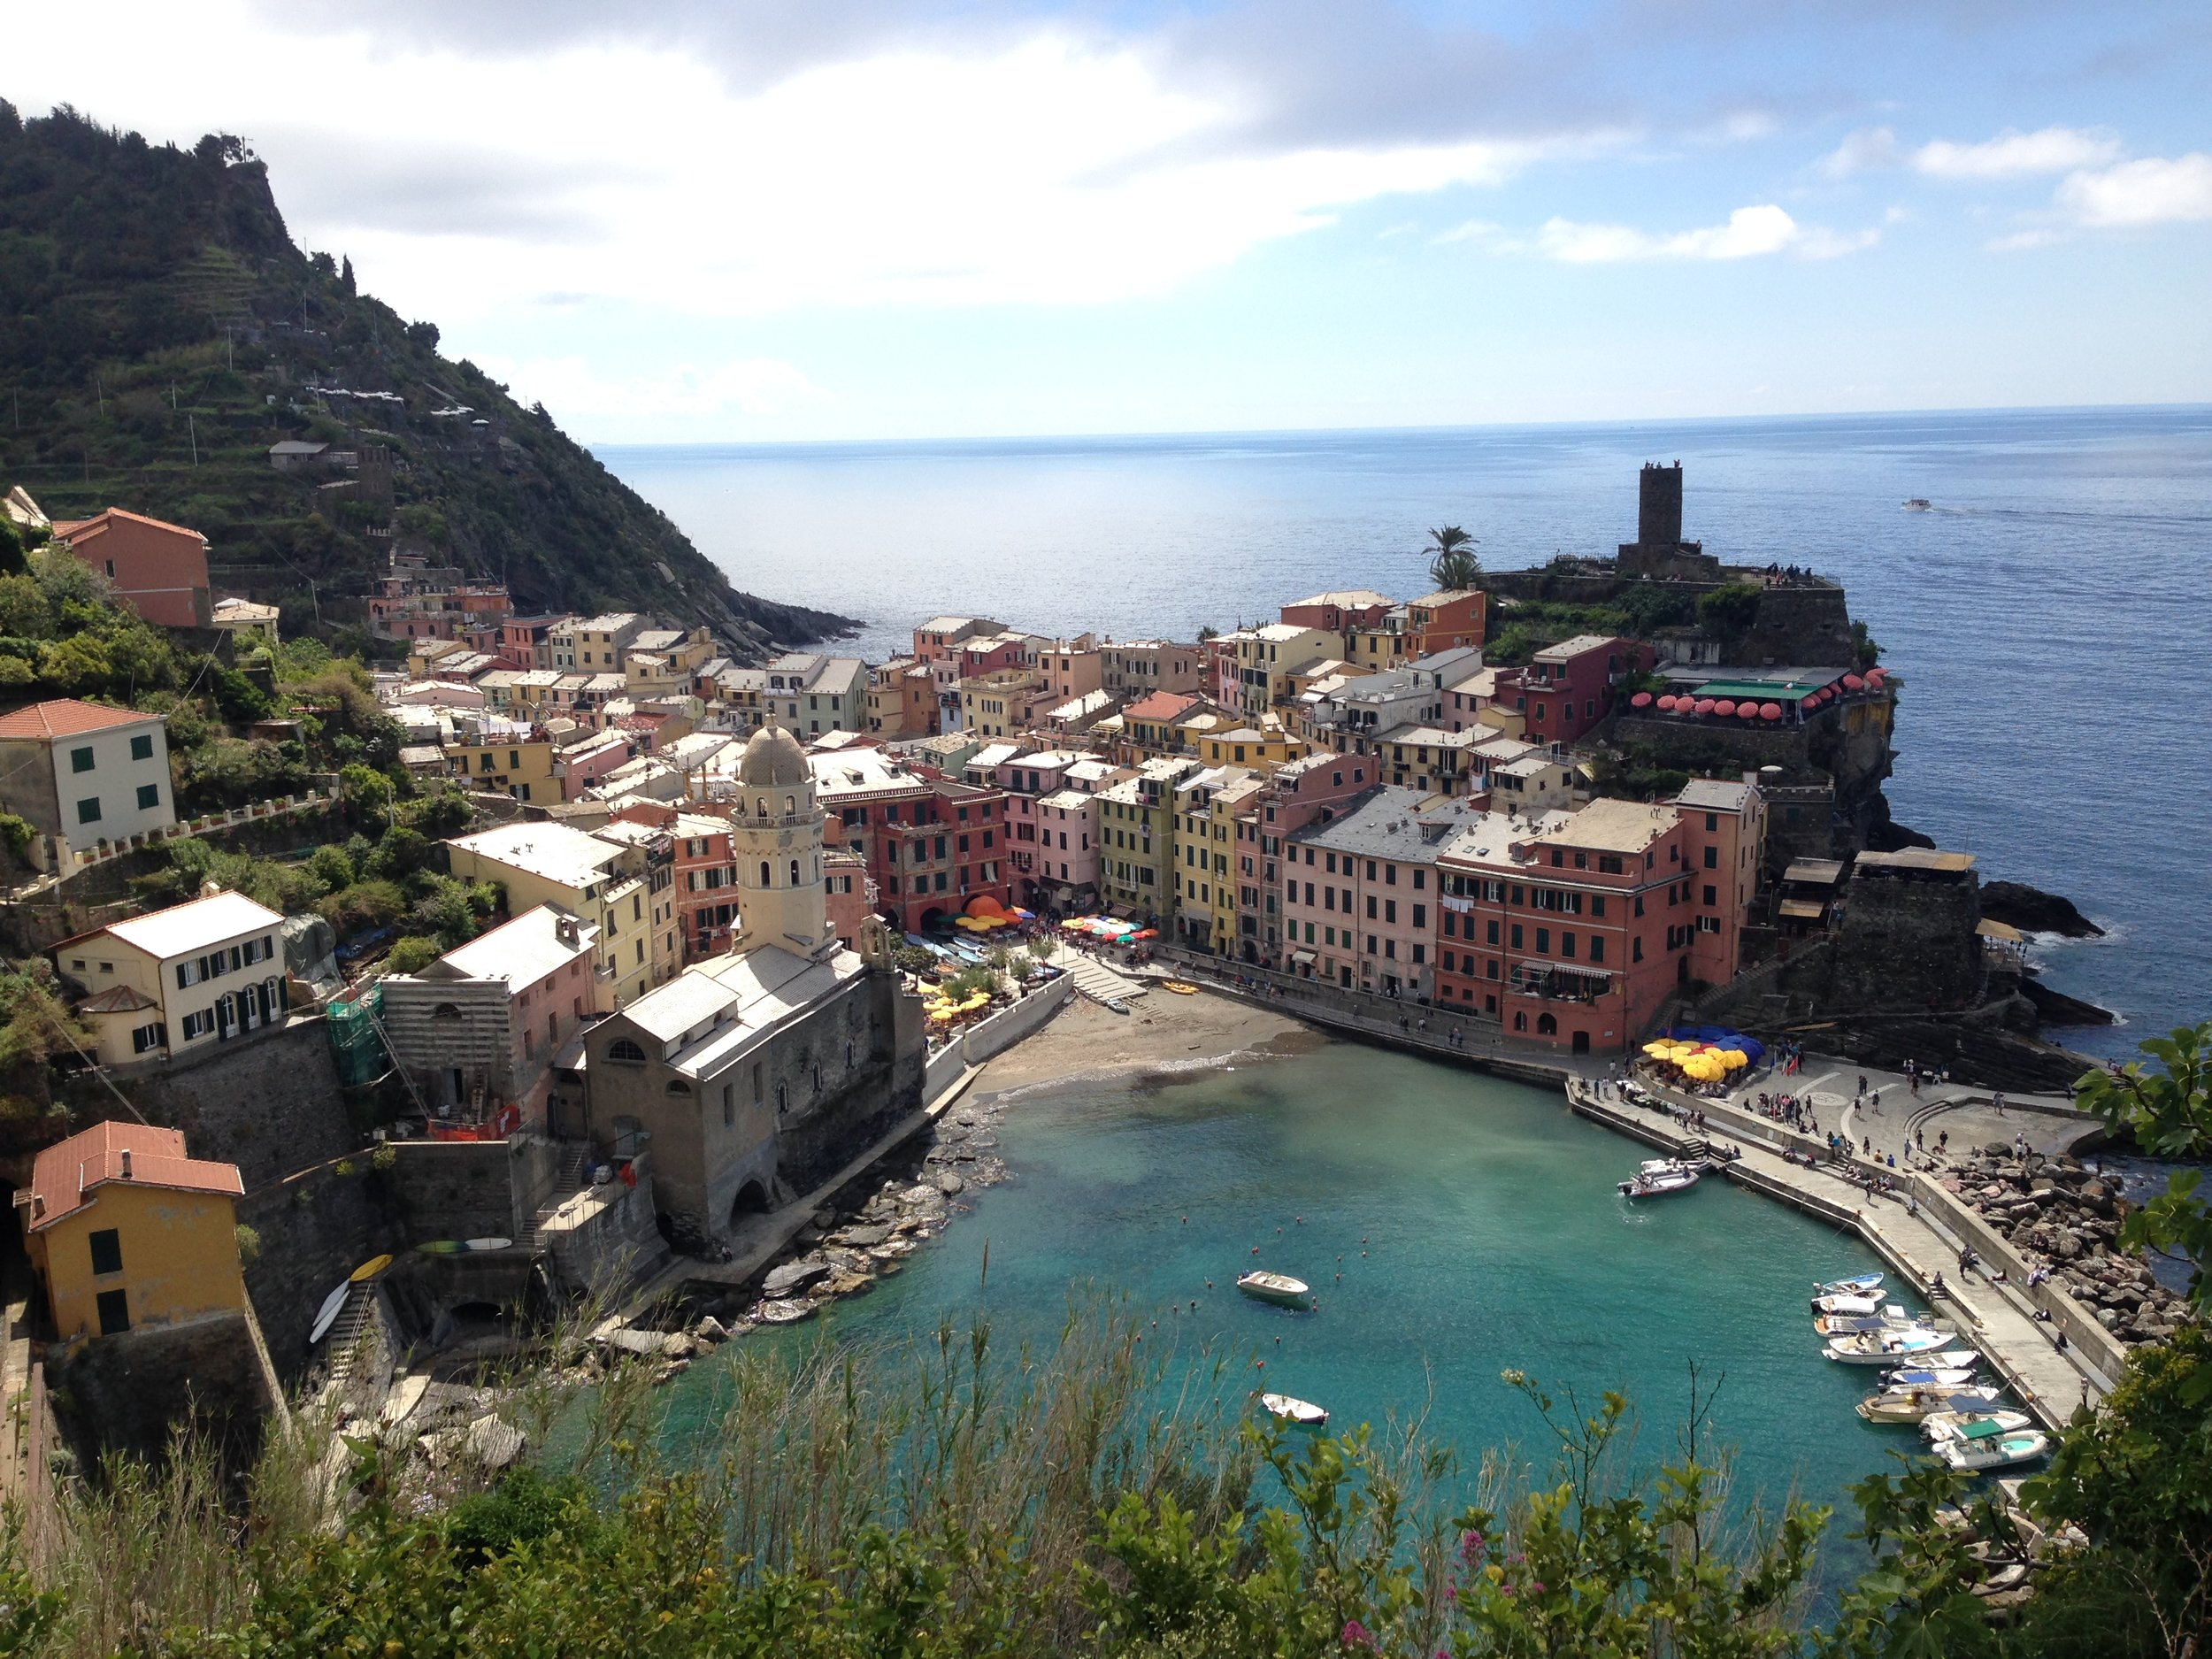 Vernazza: the village has an iconic castle (top right) and pier.